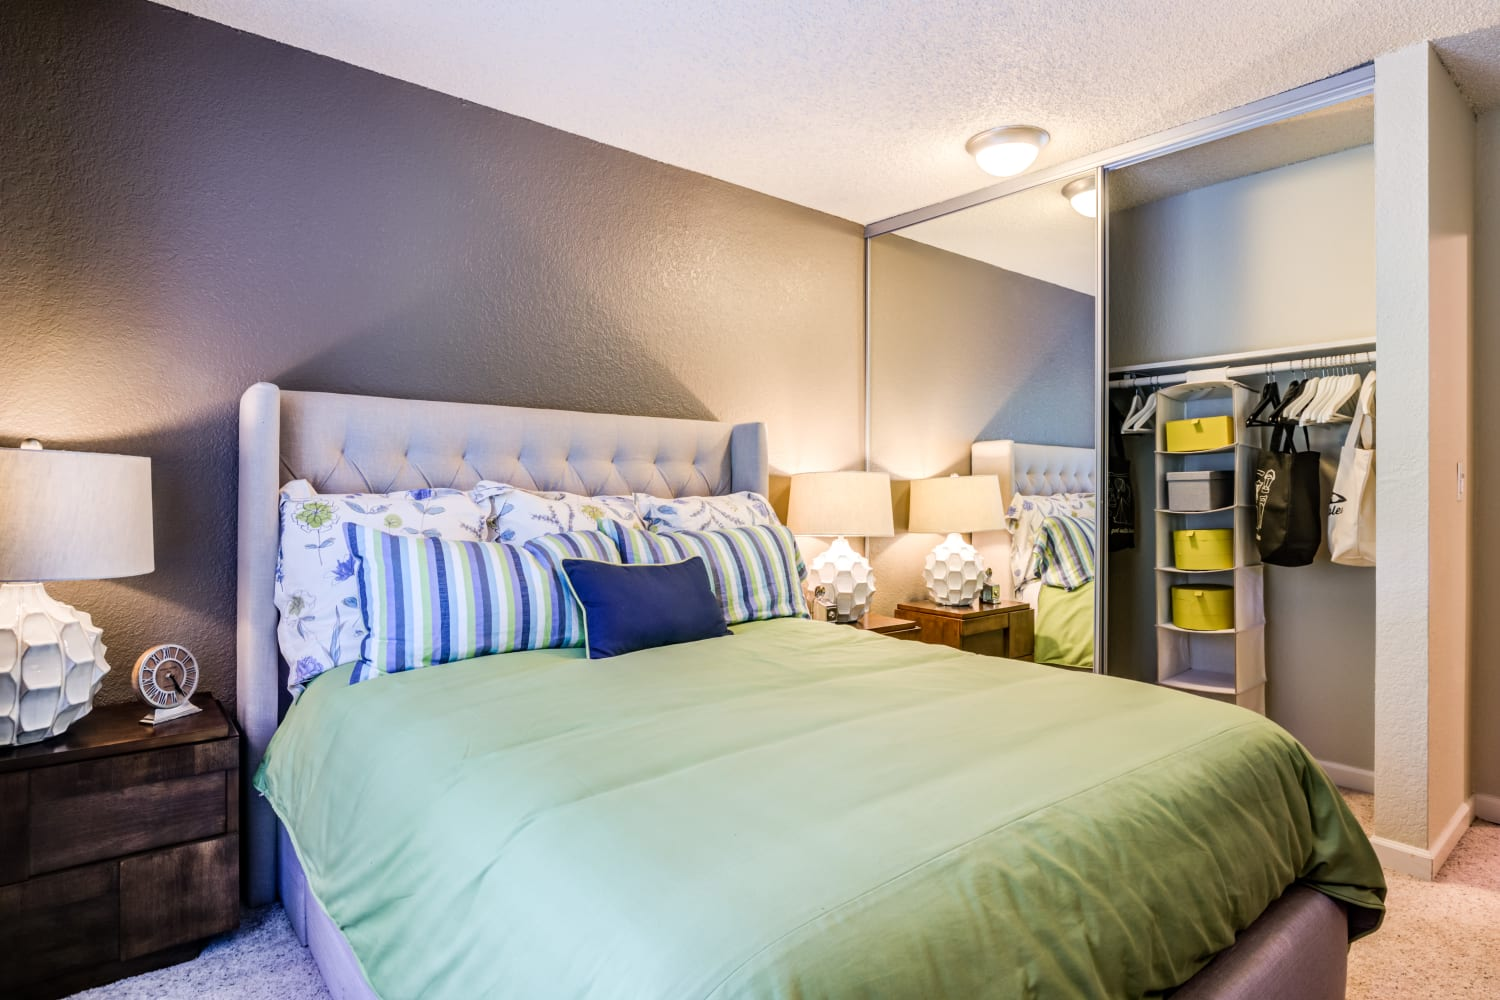 Bedroom at Vue Kirkland Apartments in Kirkland, Washington